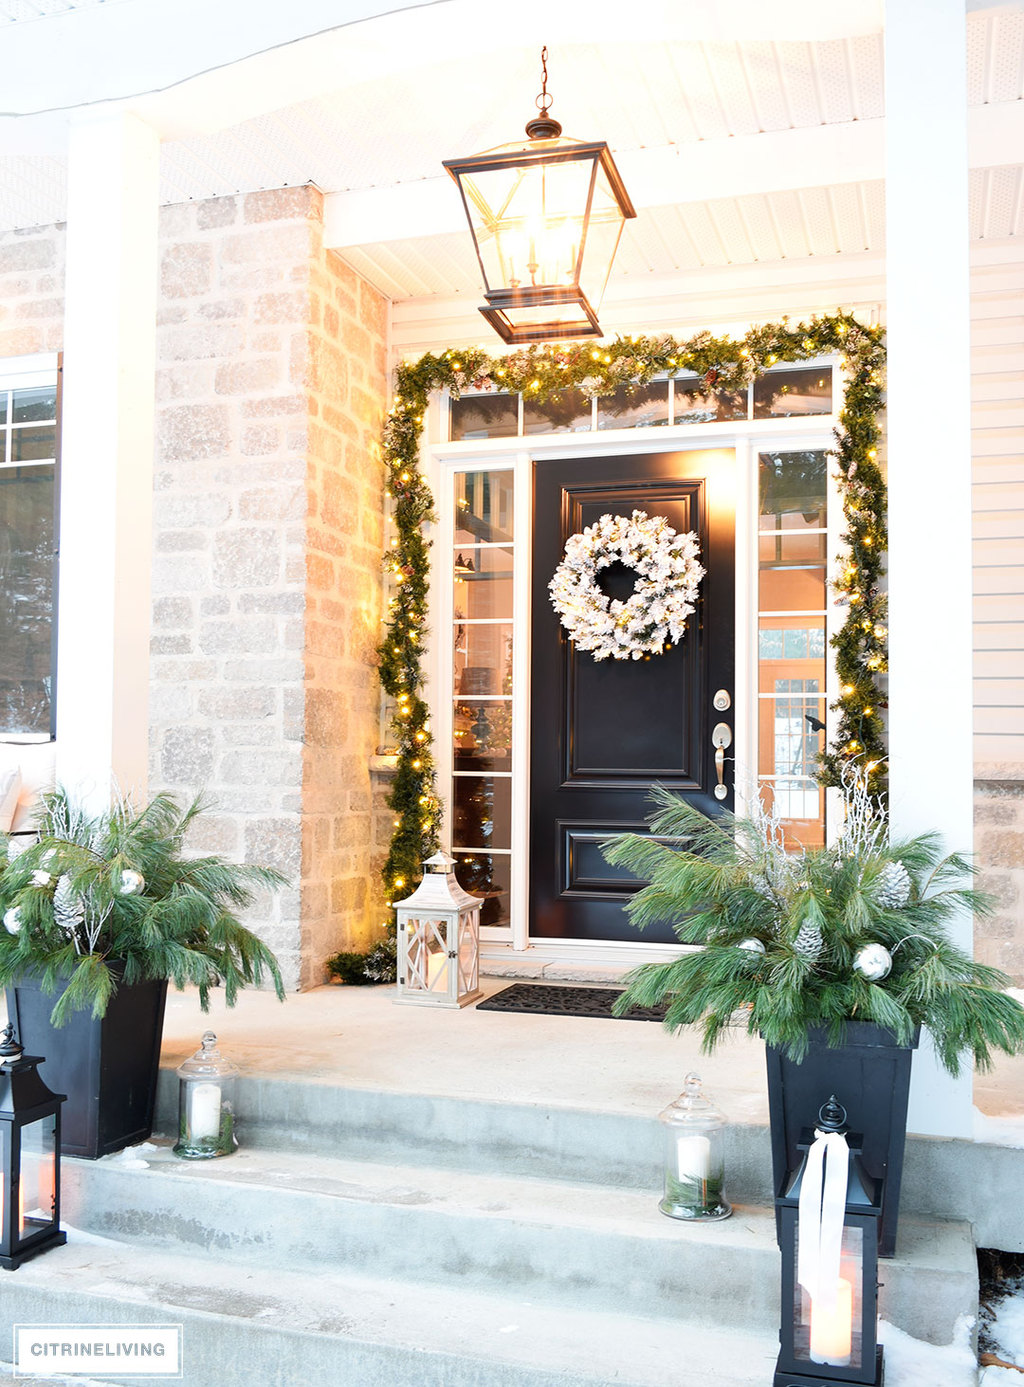 CITRINELIVING -OUTDOOR CHRISTMAS DECOR AND NEW LIGHTING